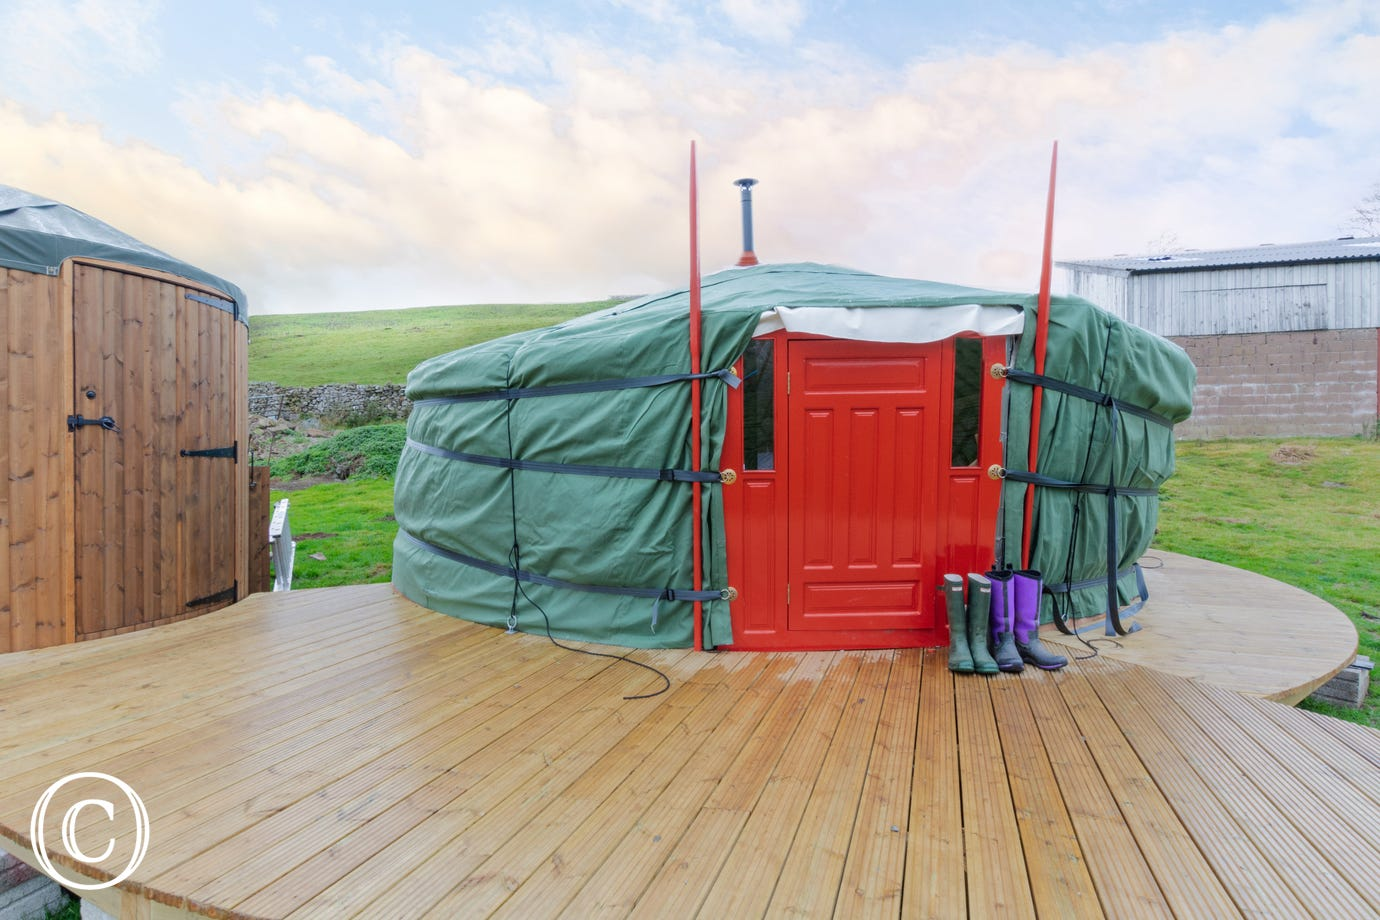 Exterior of the cosy yurt